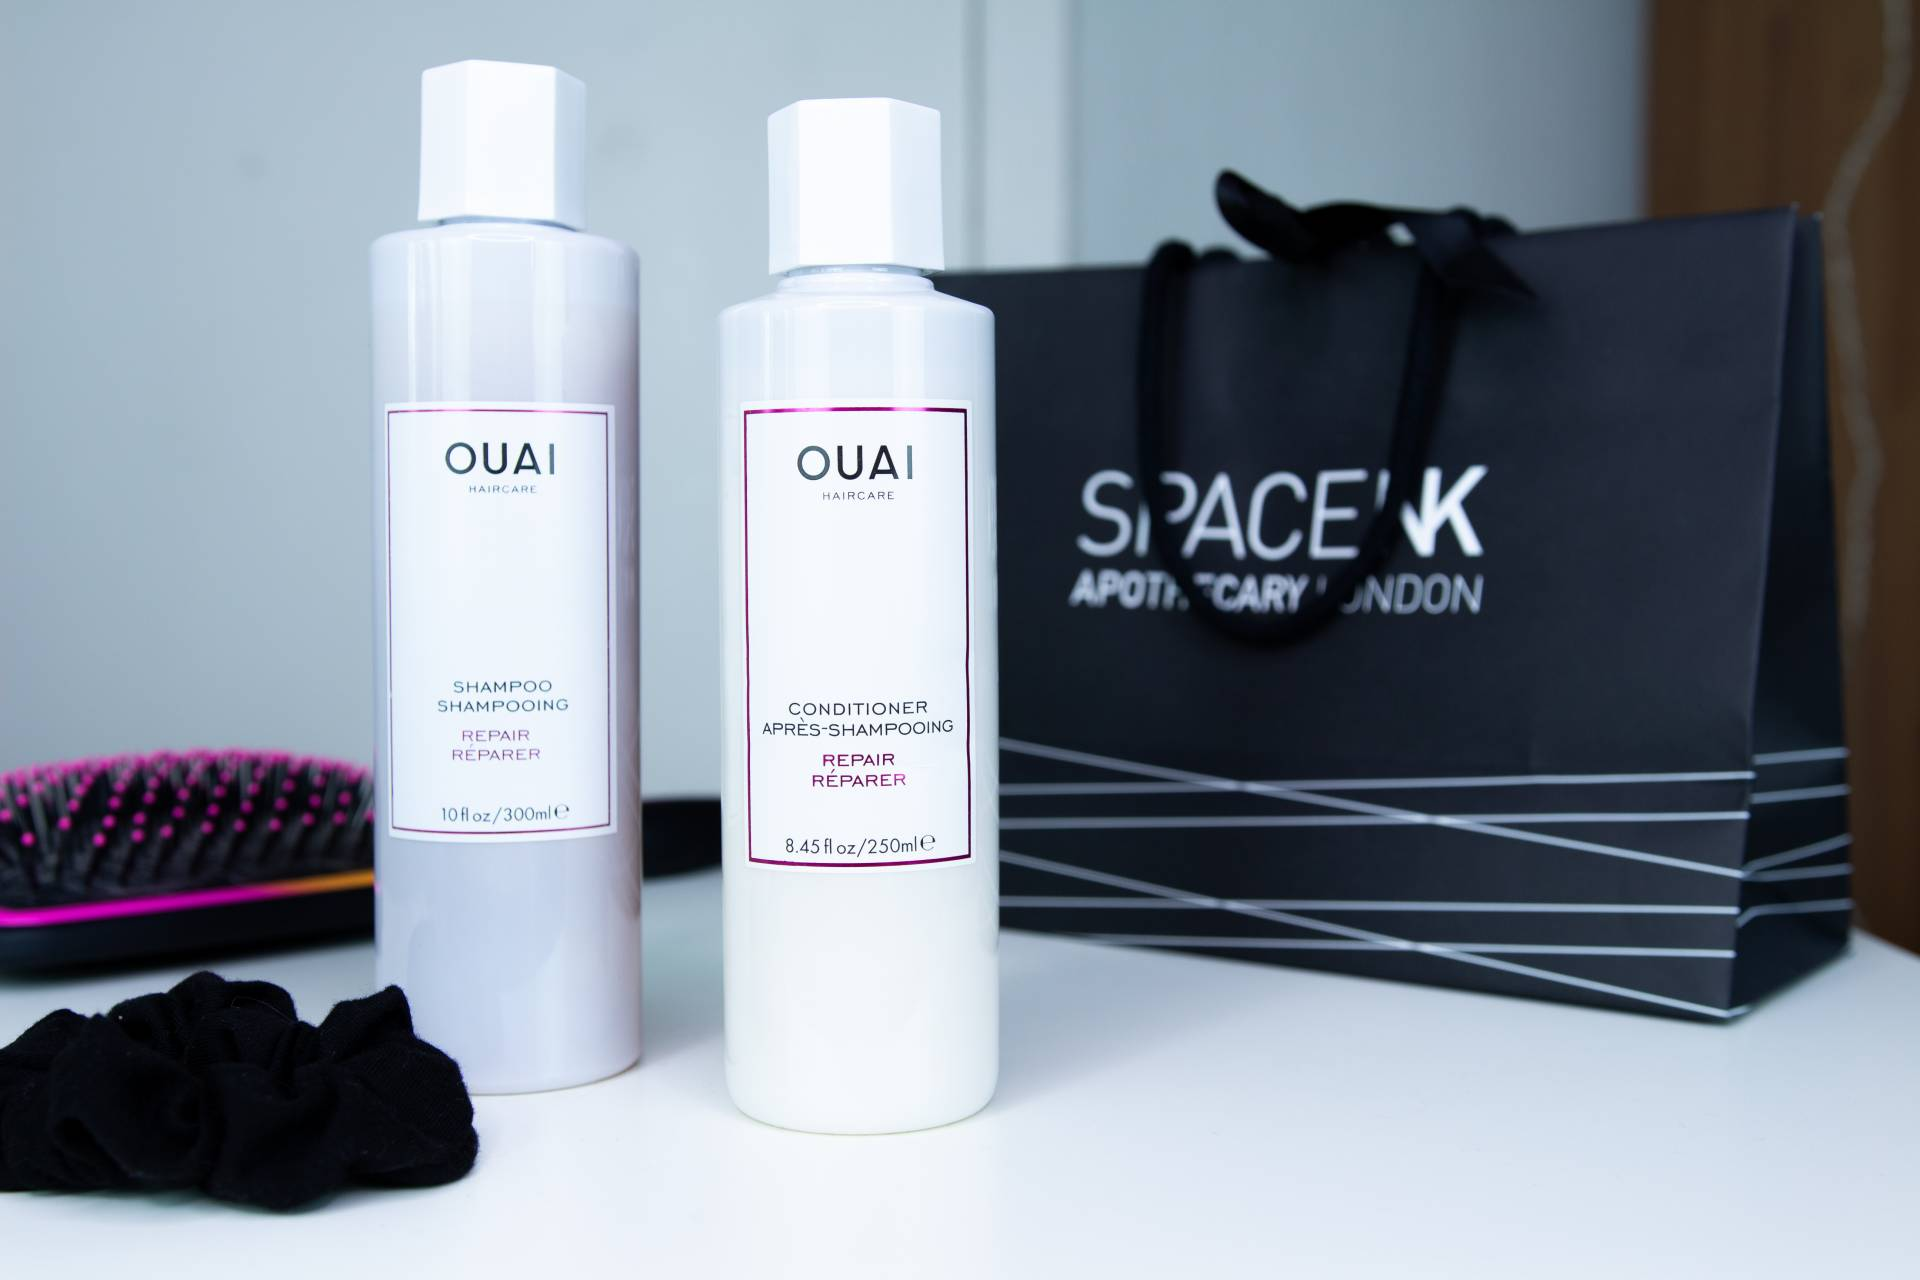 OUAI Repair Shampoo & Conditioner